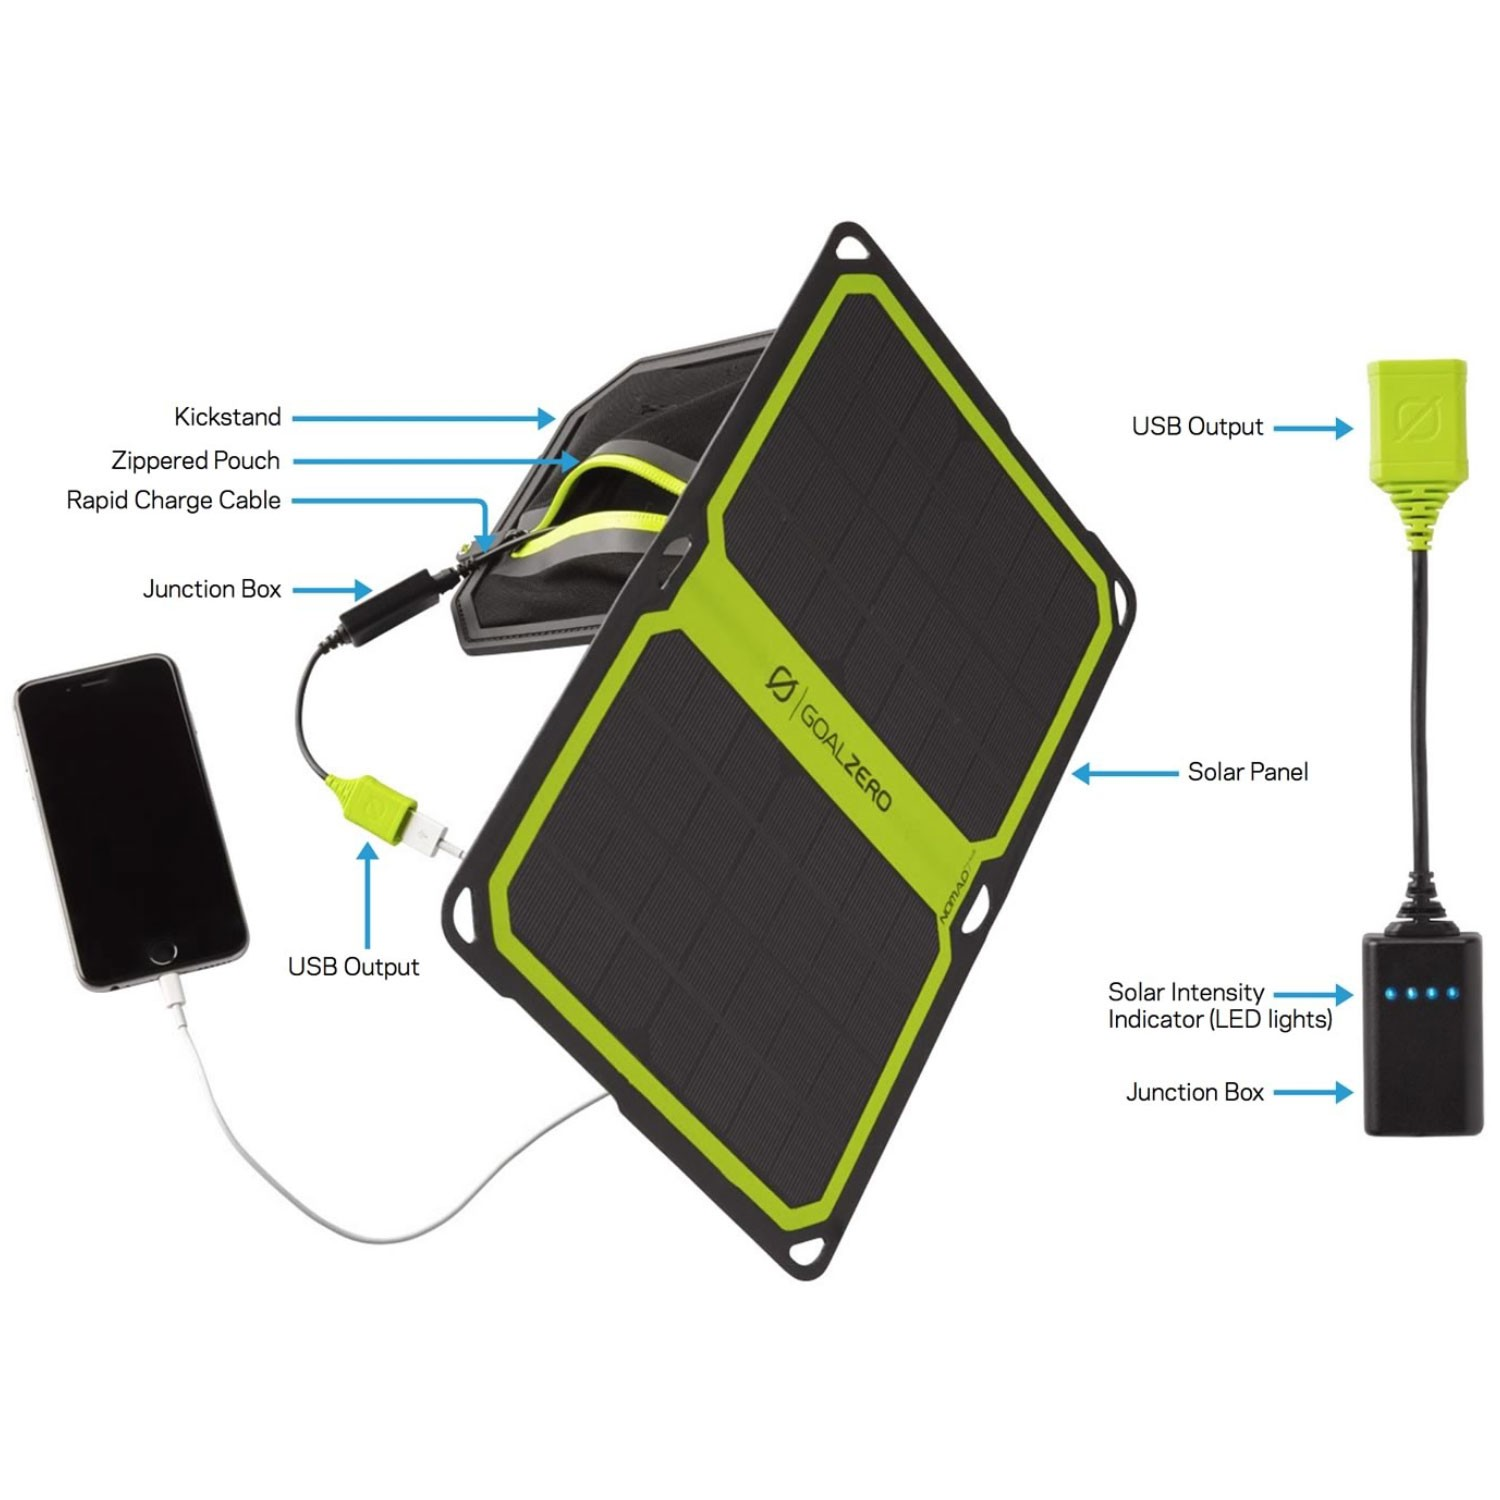 The Goal Zero Nomad 7+ Solar Charger